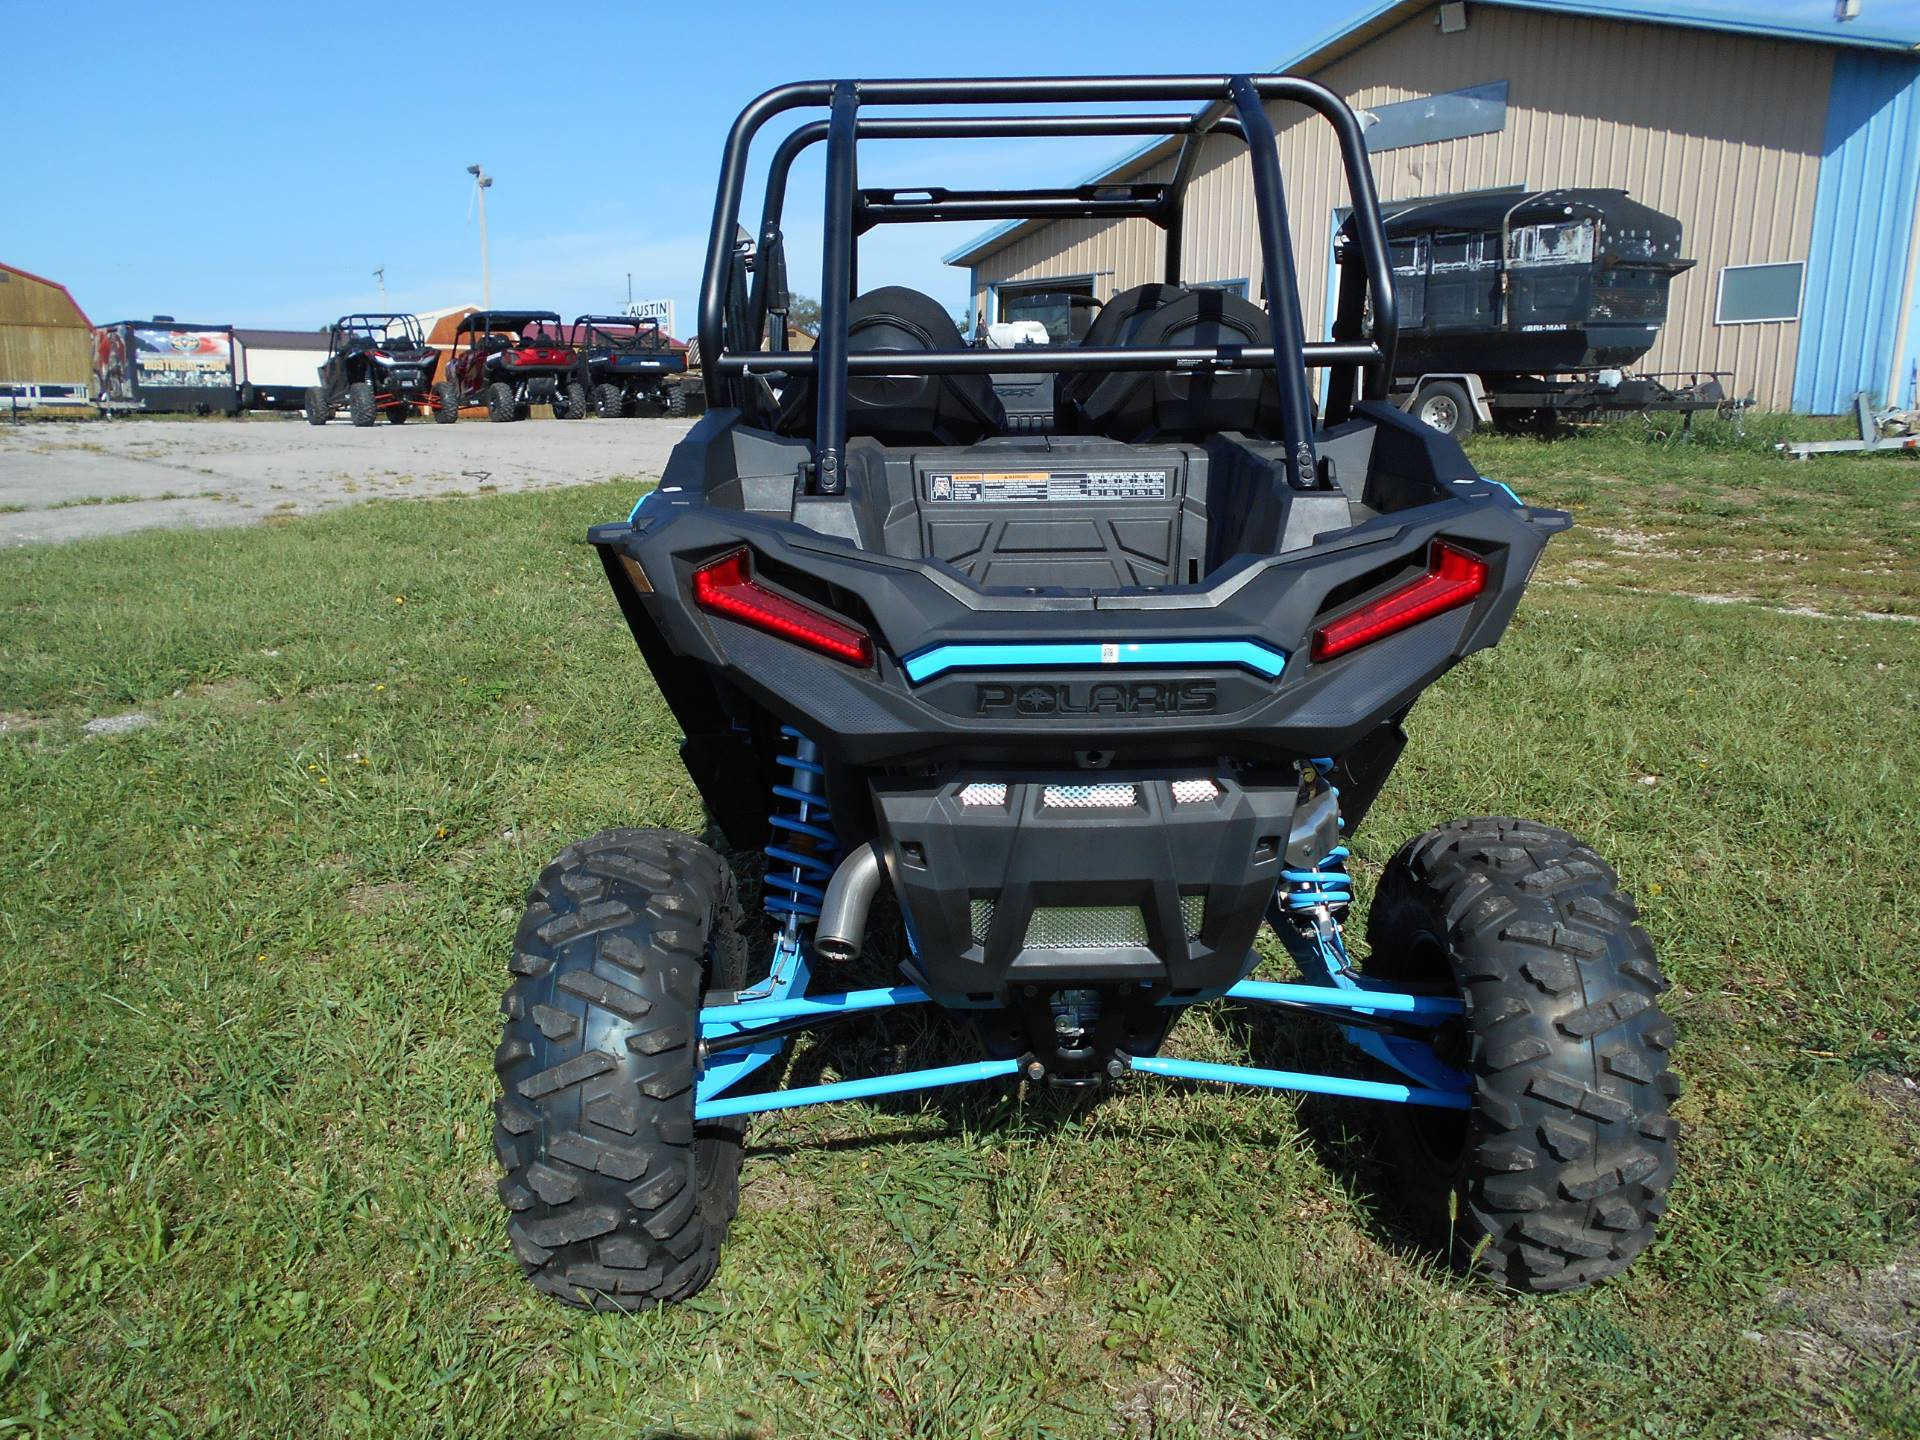 2020 Polaris RZR XP 4 1000 in Kansas City, Kansas - Photo 4